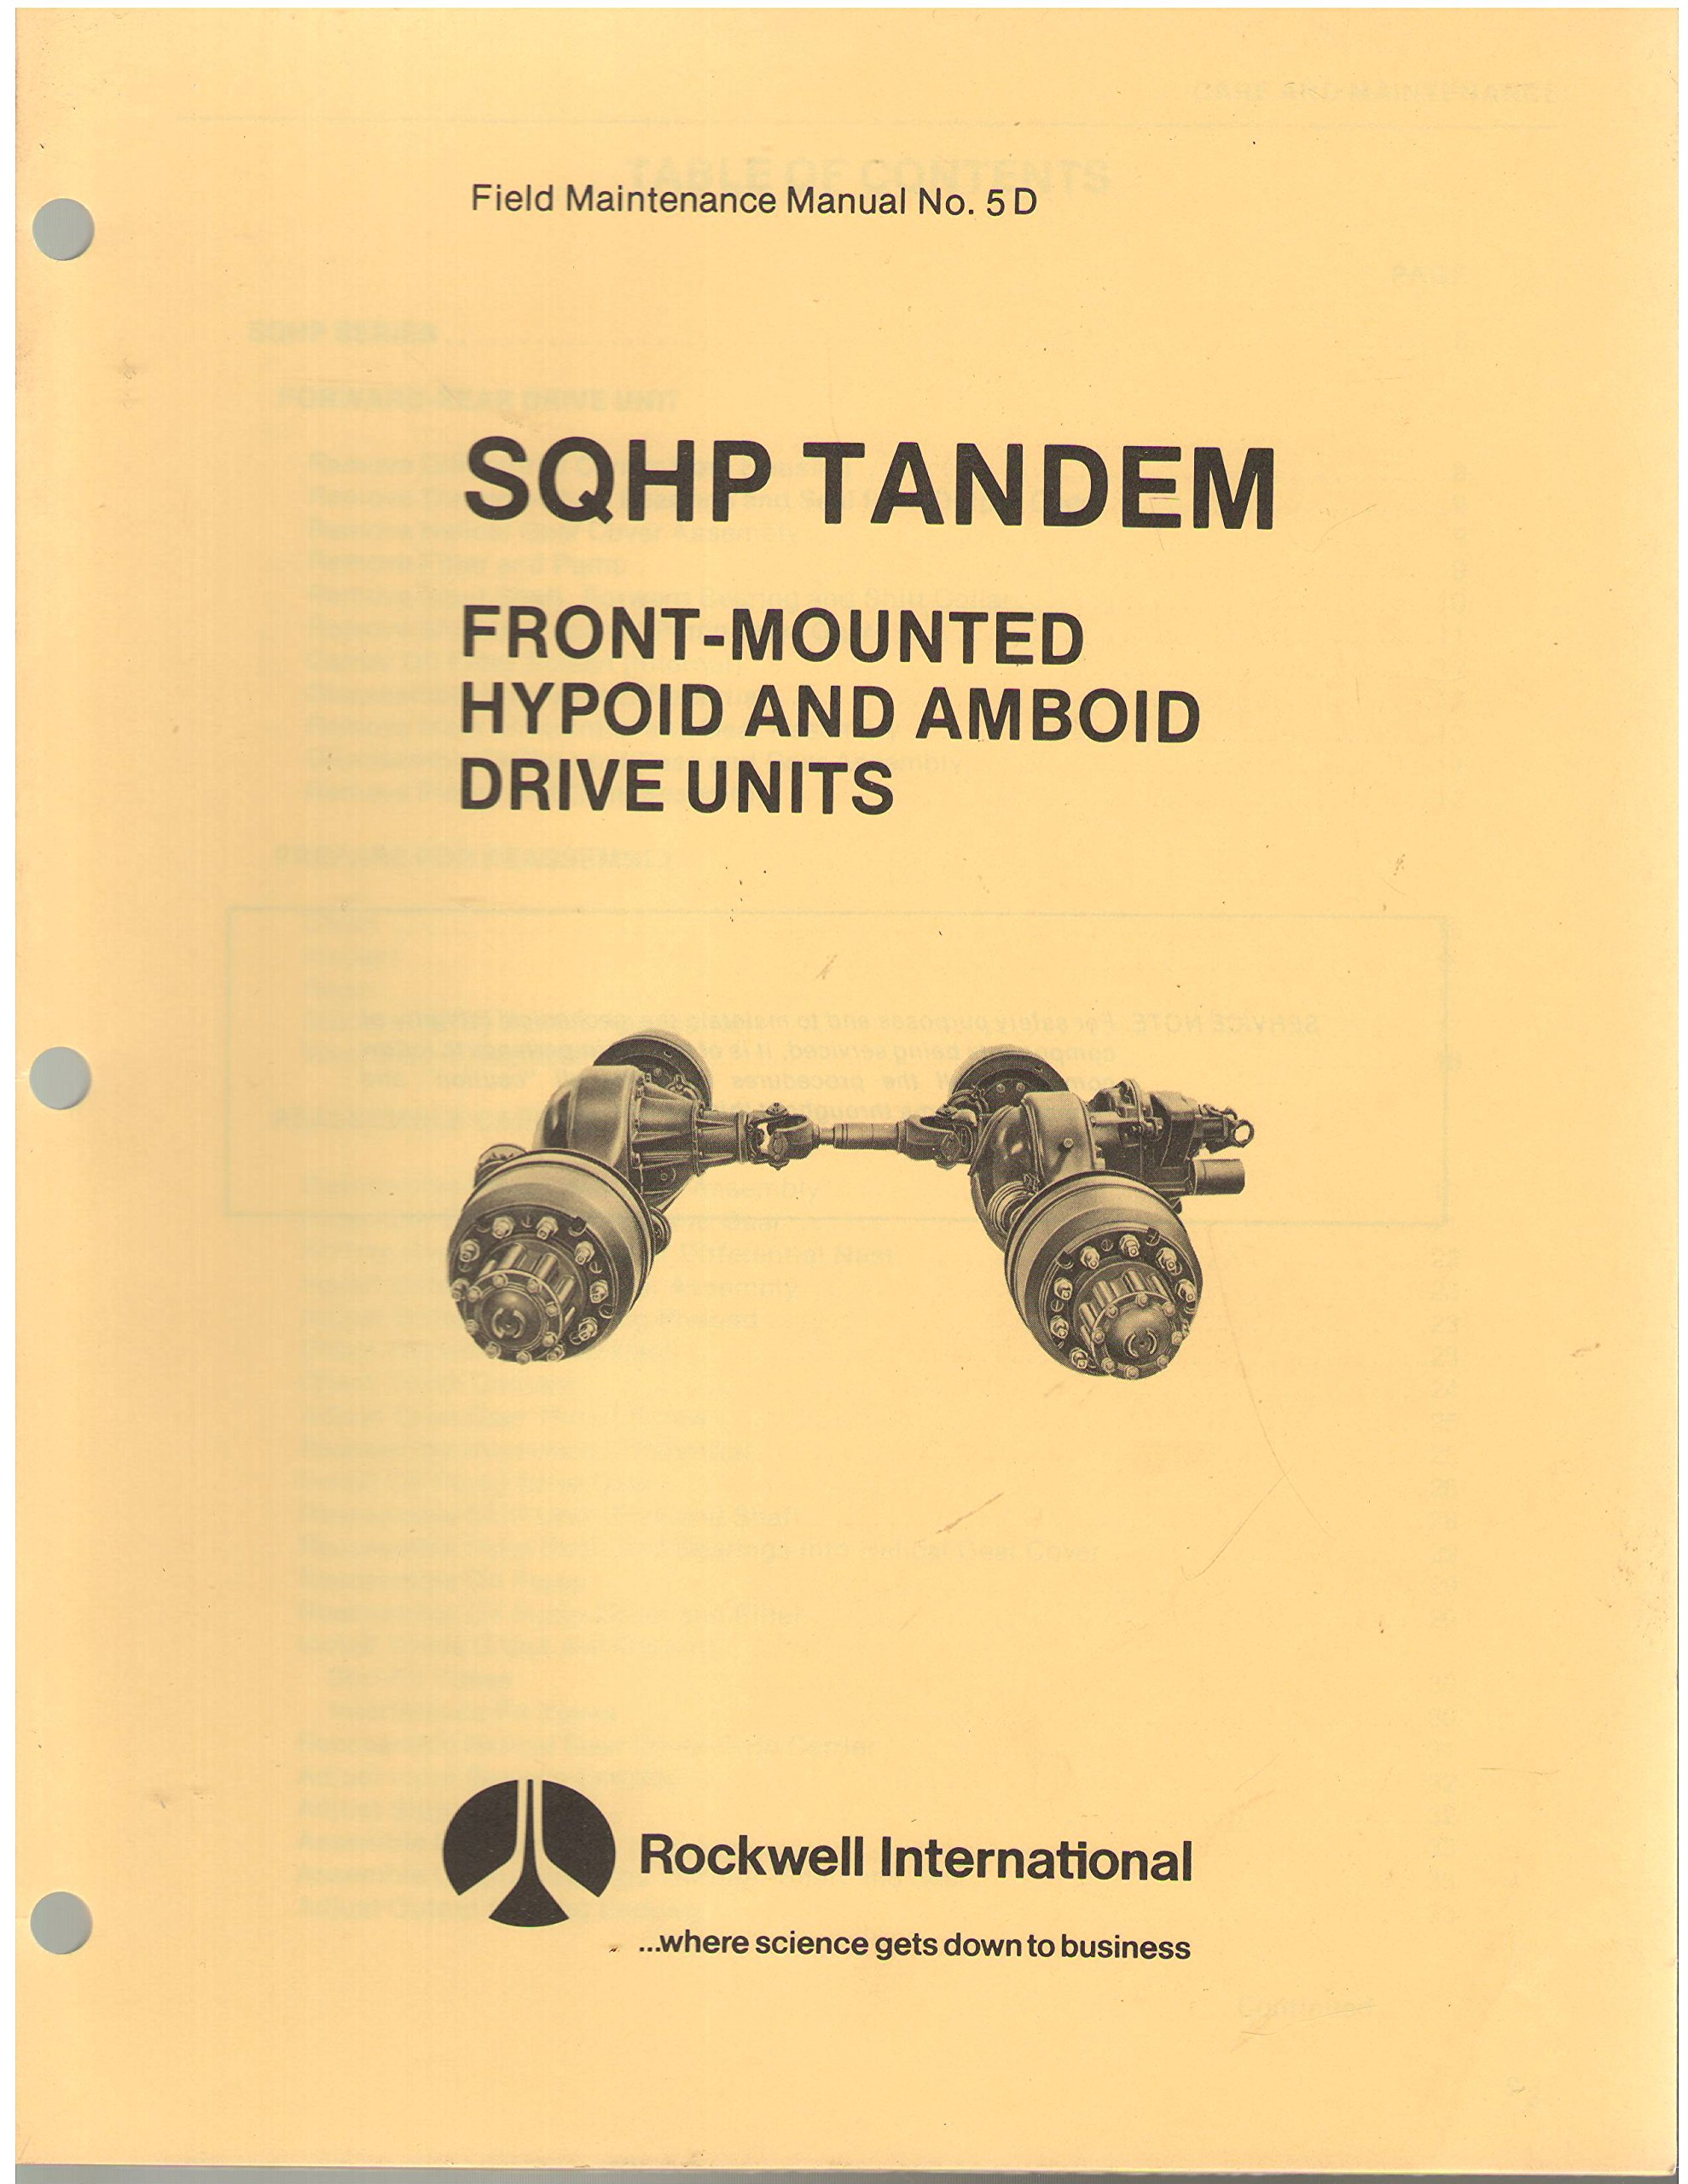 SQHP Tandem Front-Mounted Hypoid and Amboid Drive Units, Field Maintenance  Manual No. 5D: Rockwell International: Amazon.com: Books